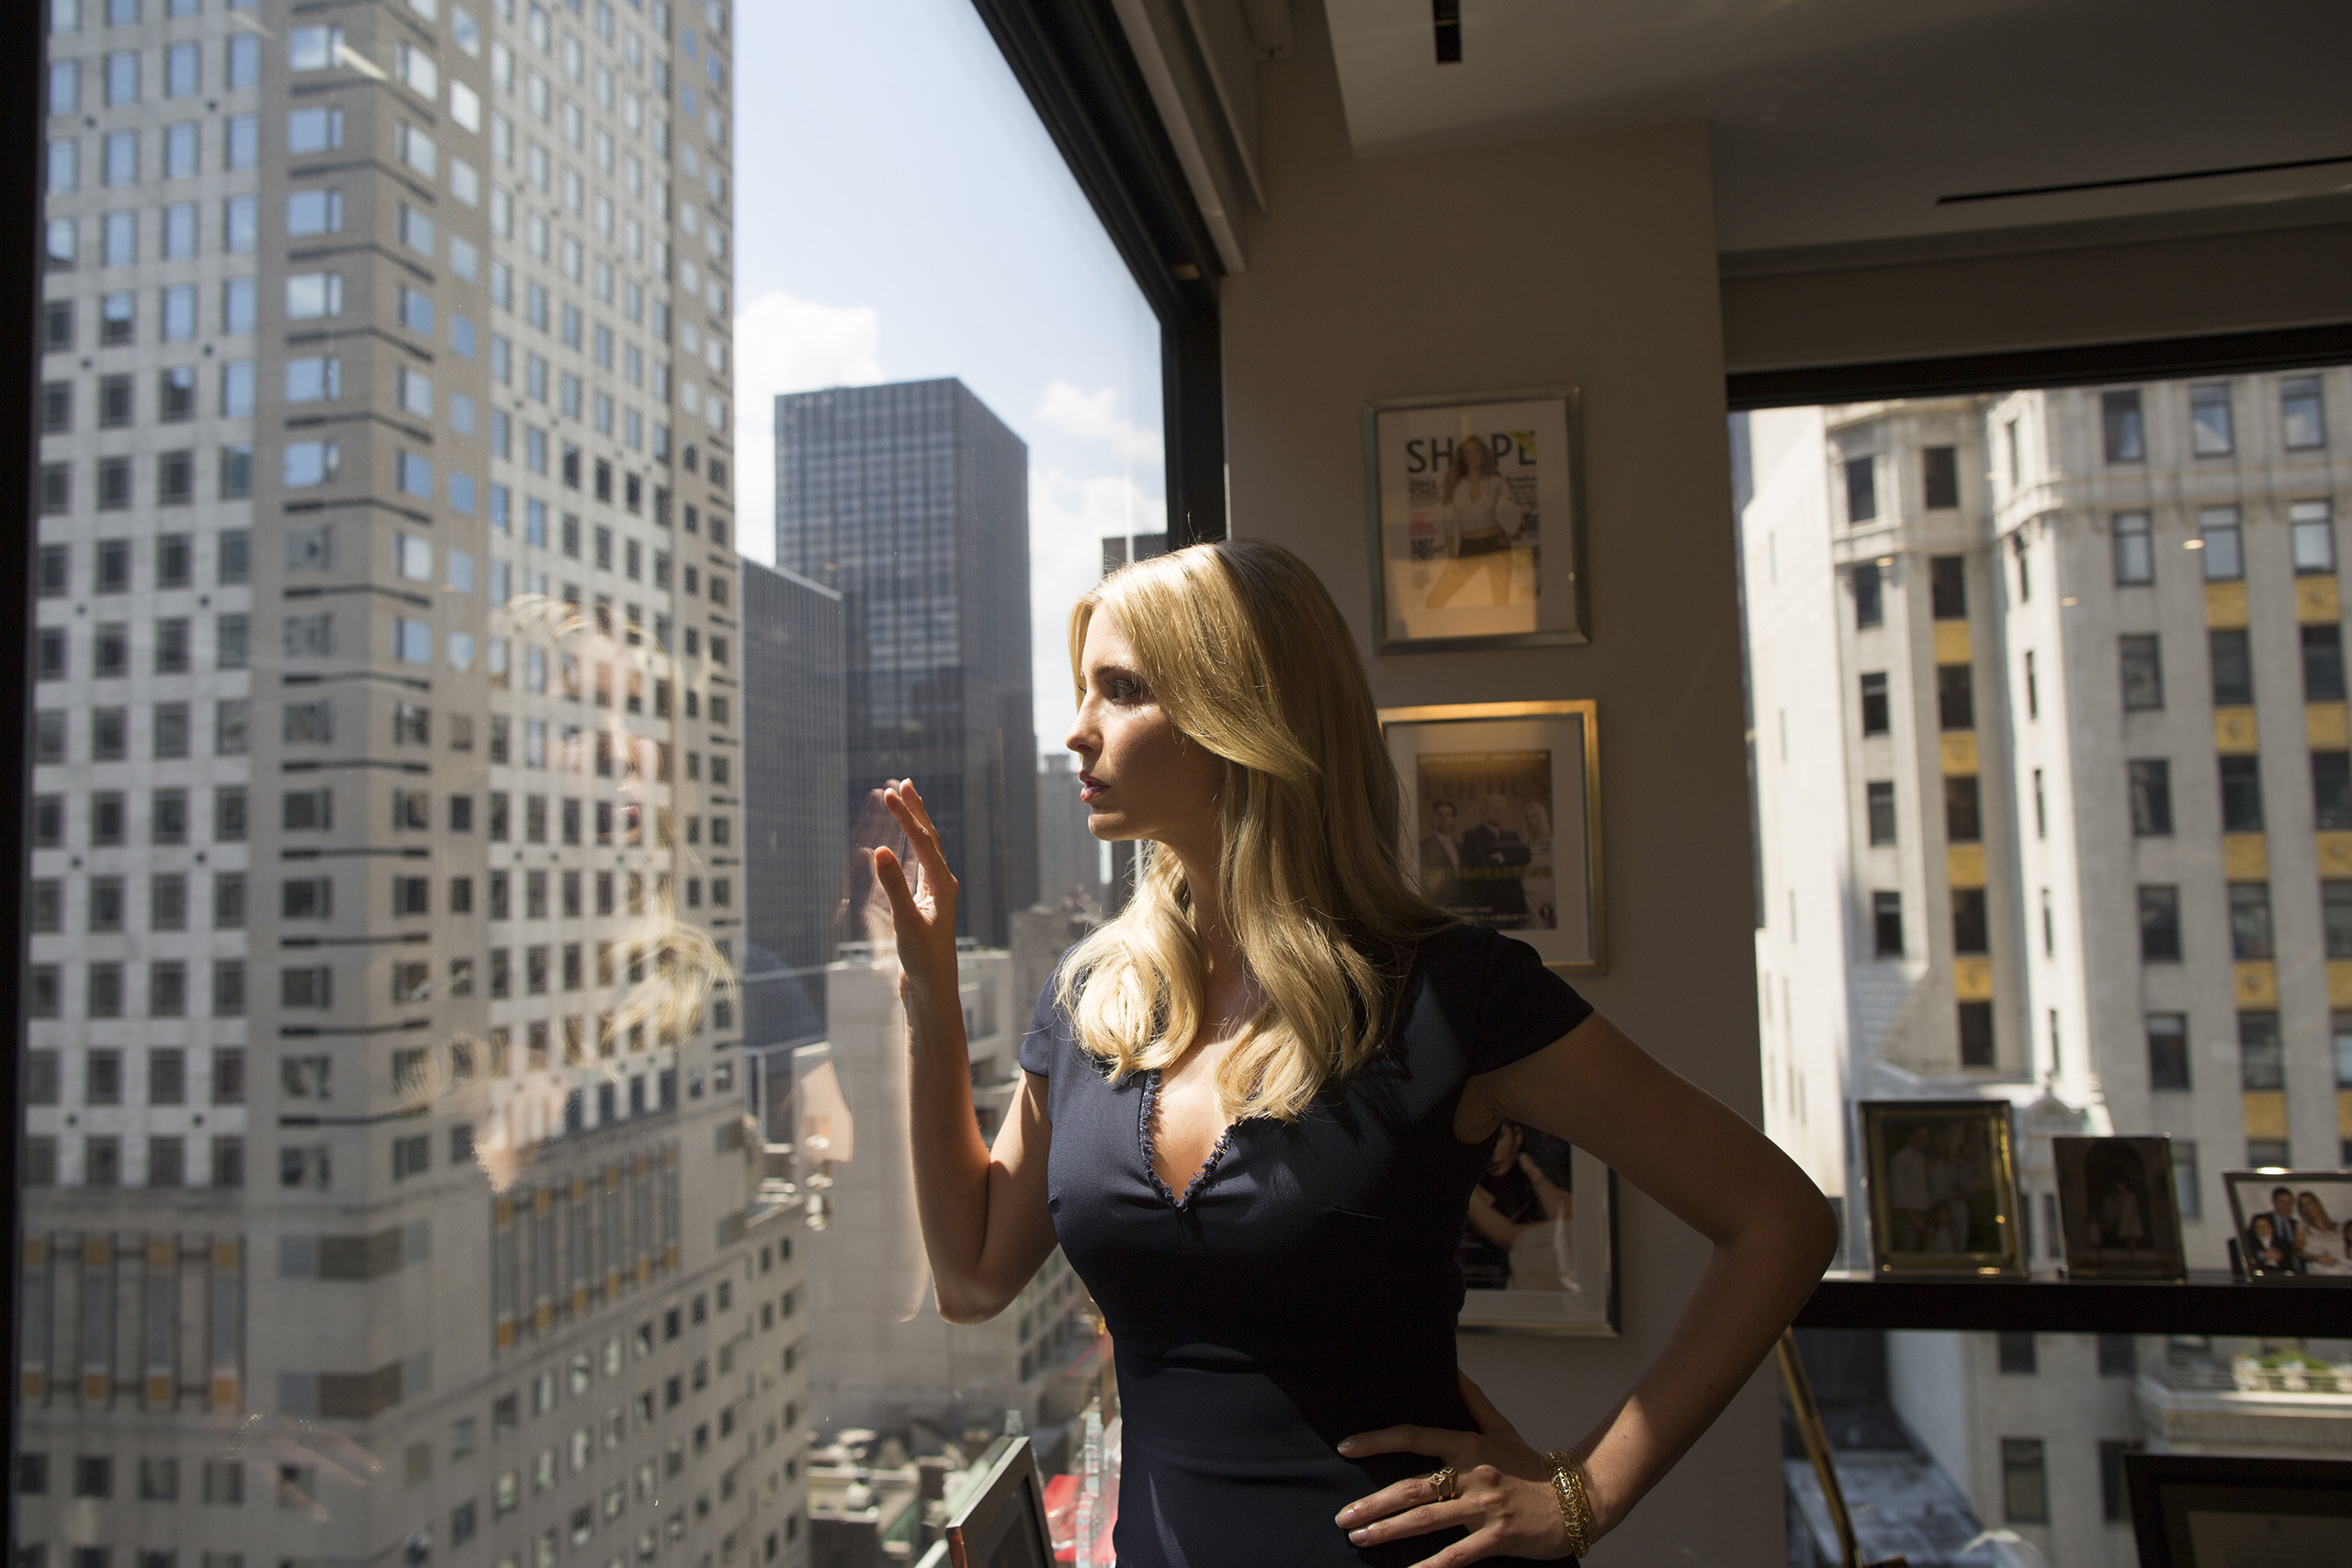 Ivanka Trump in her office at Trump Tower in New York City on July 6, 2016.